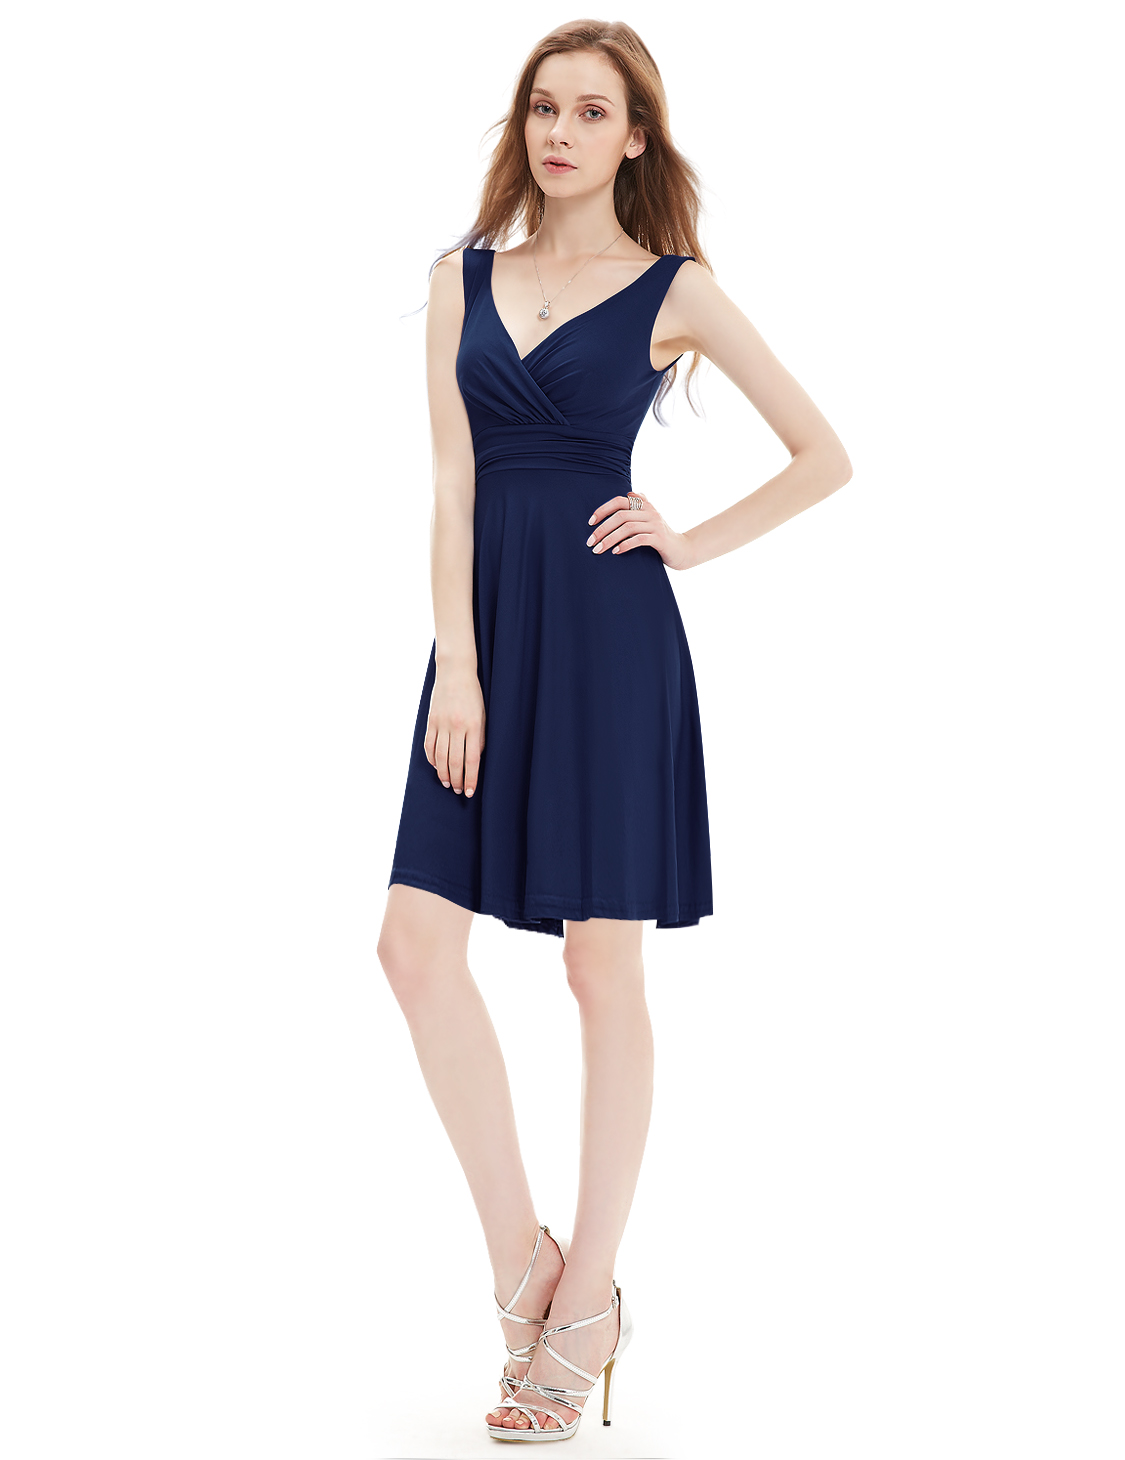 Short V-neck Sexy Women Summer Cocktail Dresses Casual ...